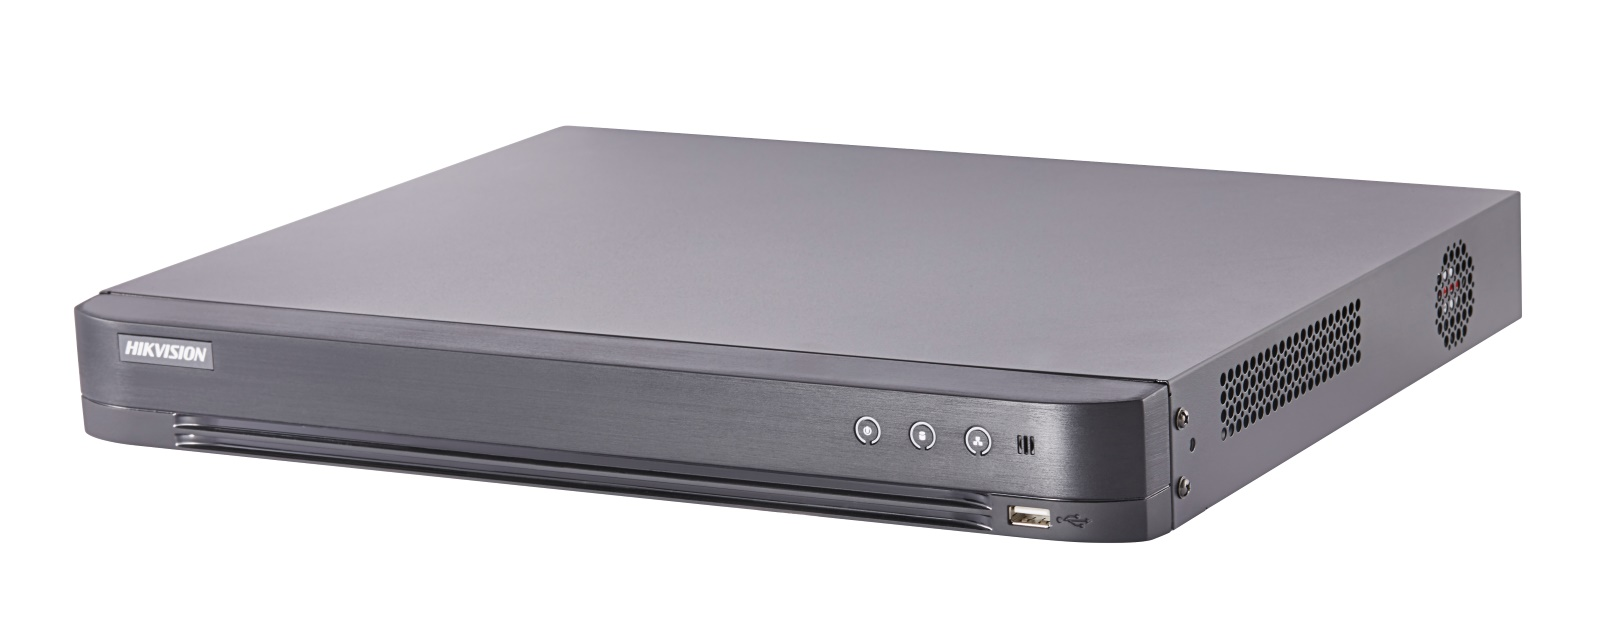 DS-7224HQHI-K2 (24 Channel DVR)